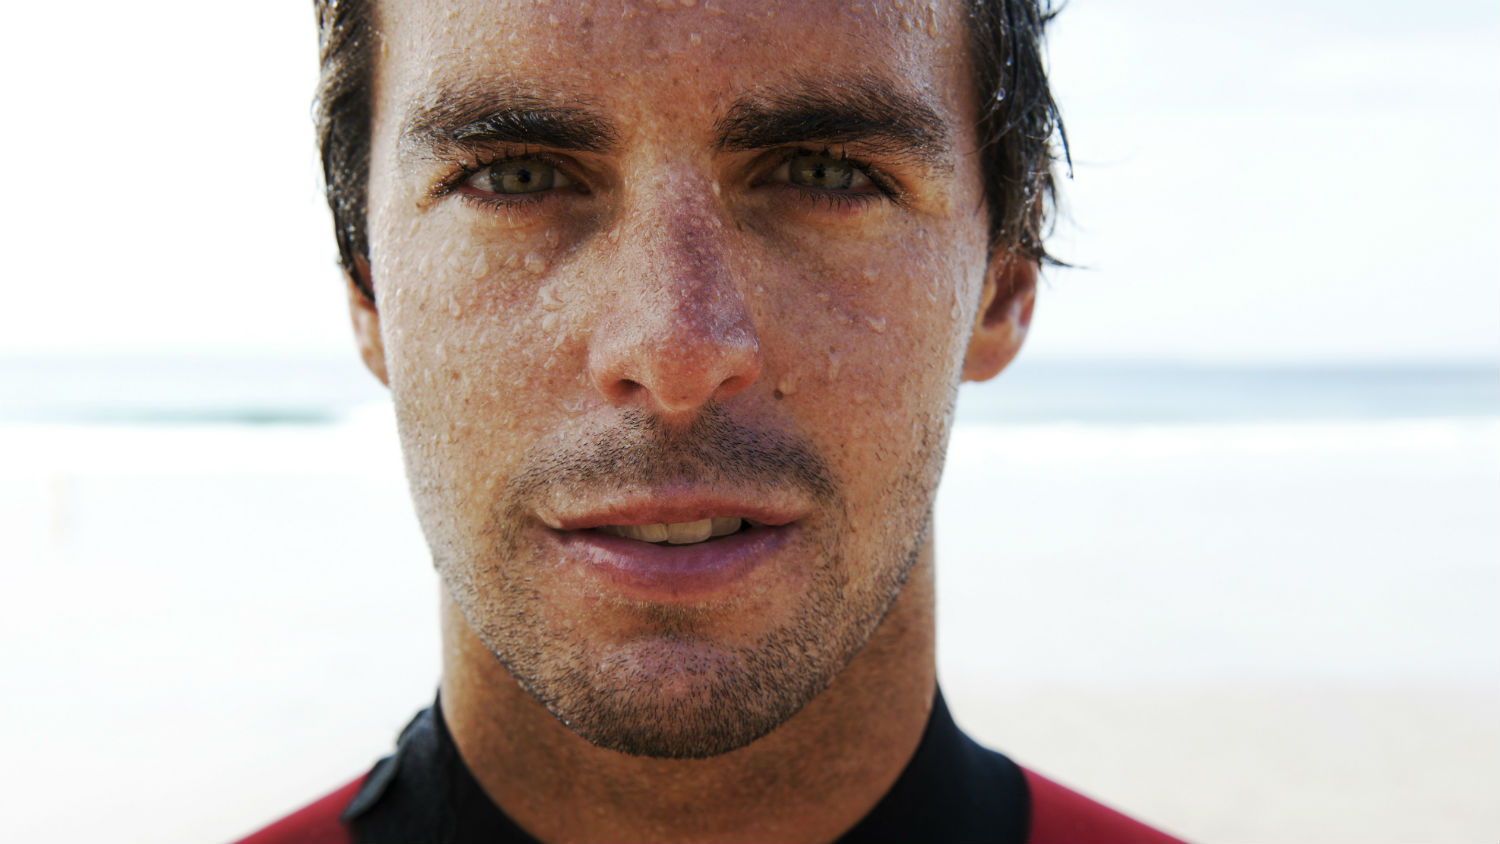 Surfer and RNLI Lifeguard Supervisor Will Glenn explains why he respects the water